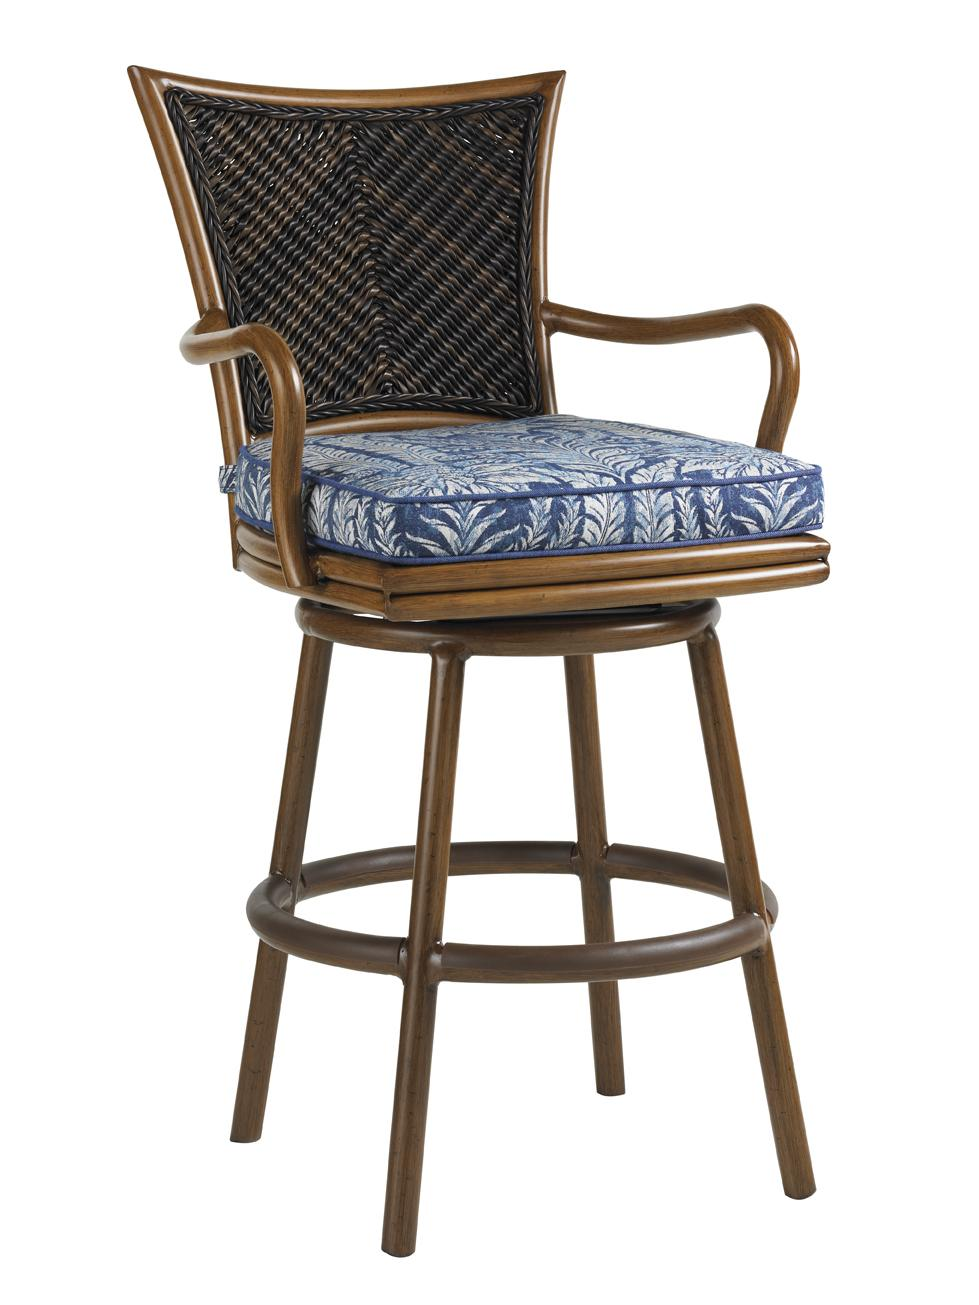 Island Estate Lanai Outdoor Swivel Bar Stool by Tommy Bahama Outdoor Living at Baer's Furniture